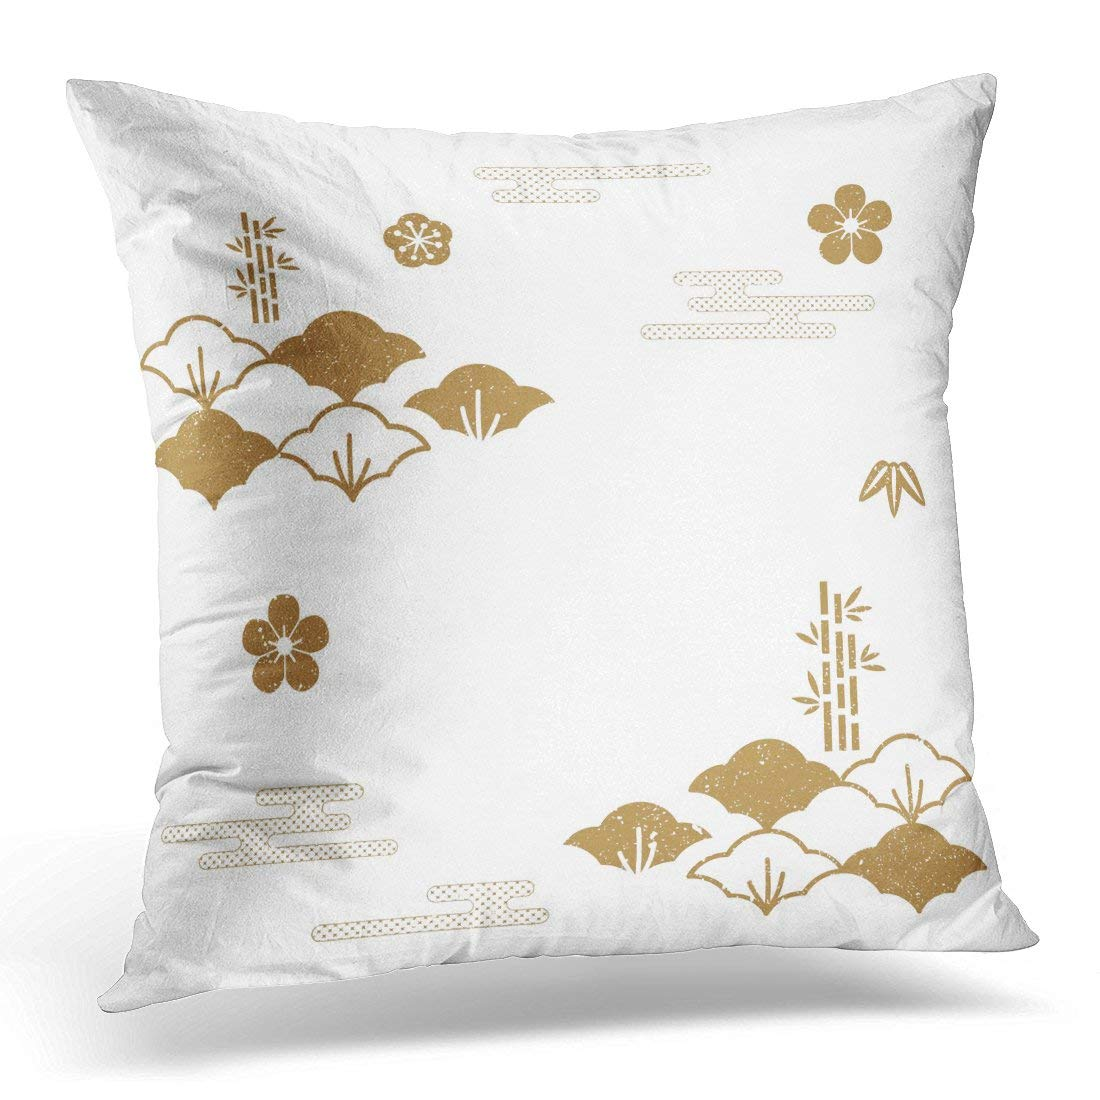 USART Tradition Japanese Pattern Gold and Symbols of Traditional in Japan Asia Pillow Case Pillow Cover 20x20 inch